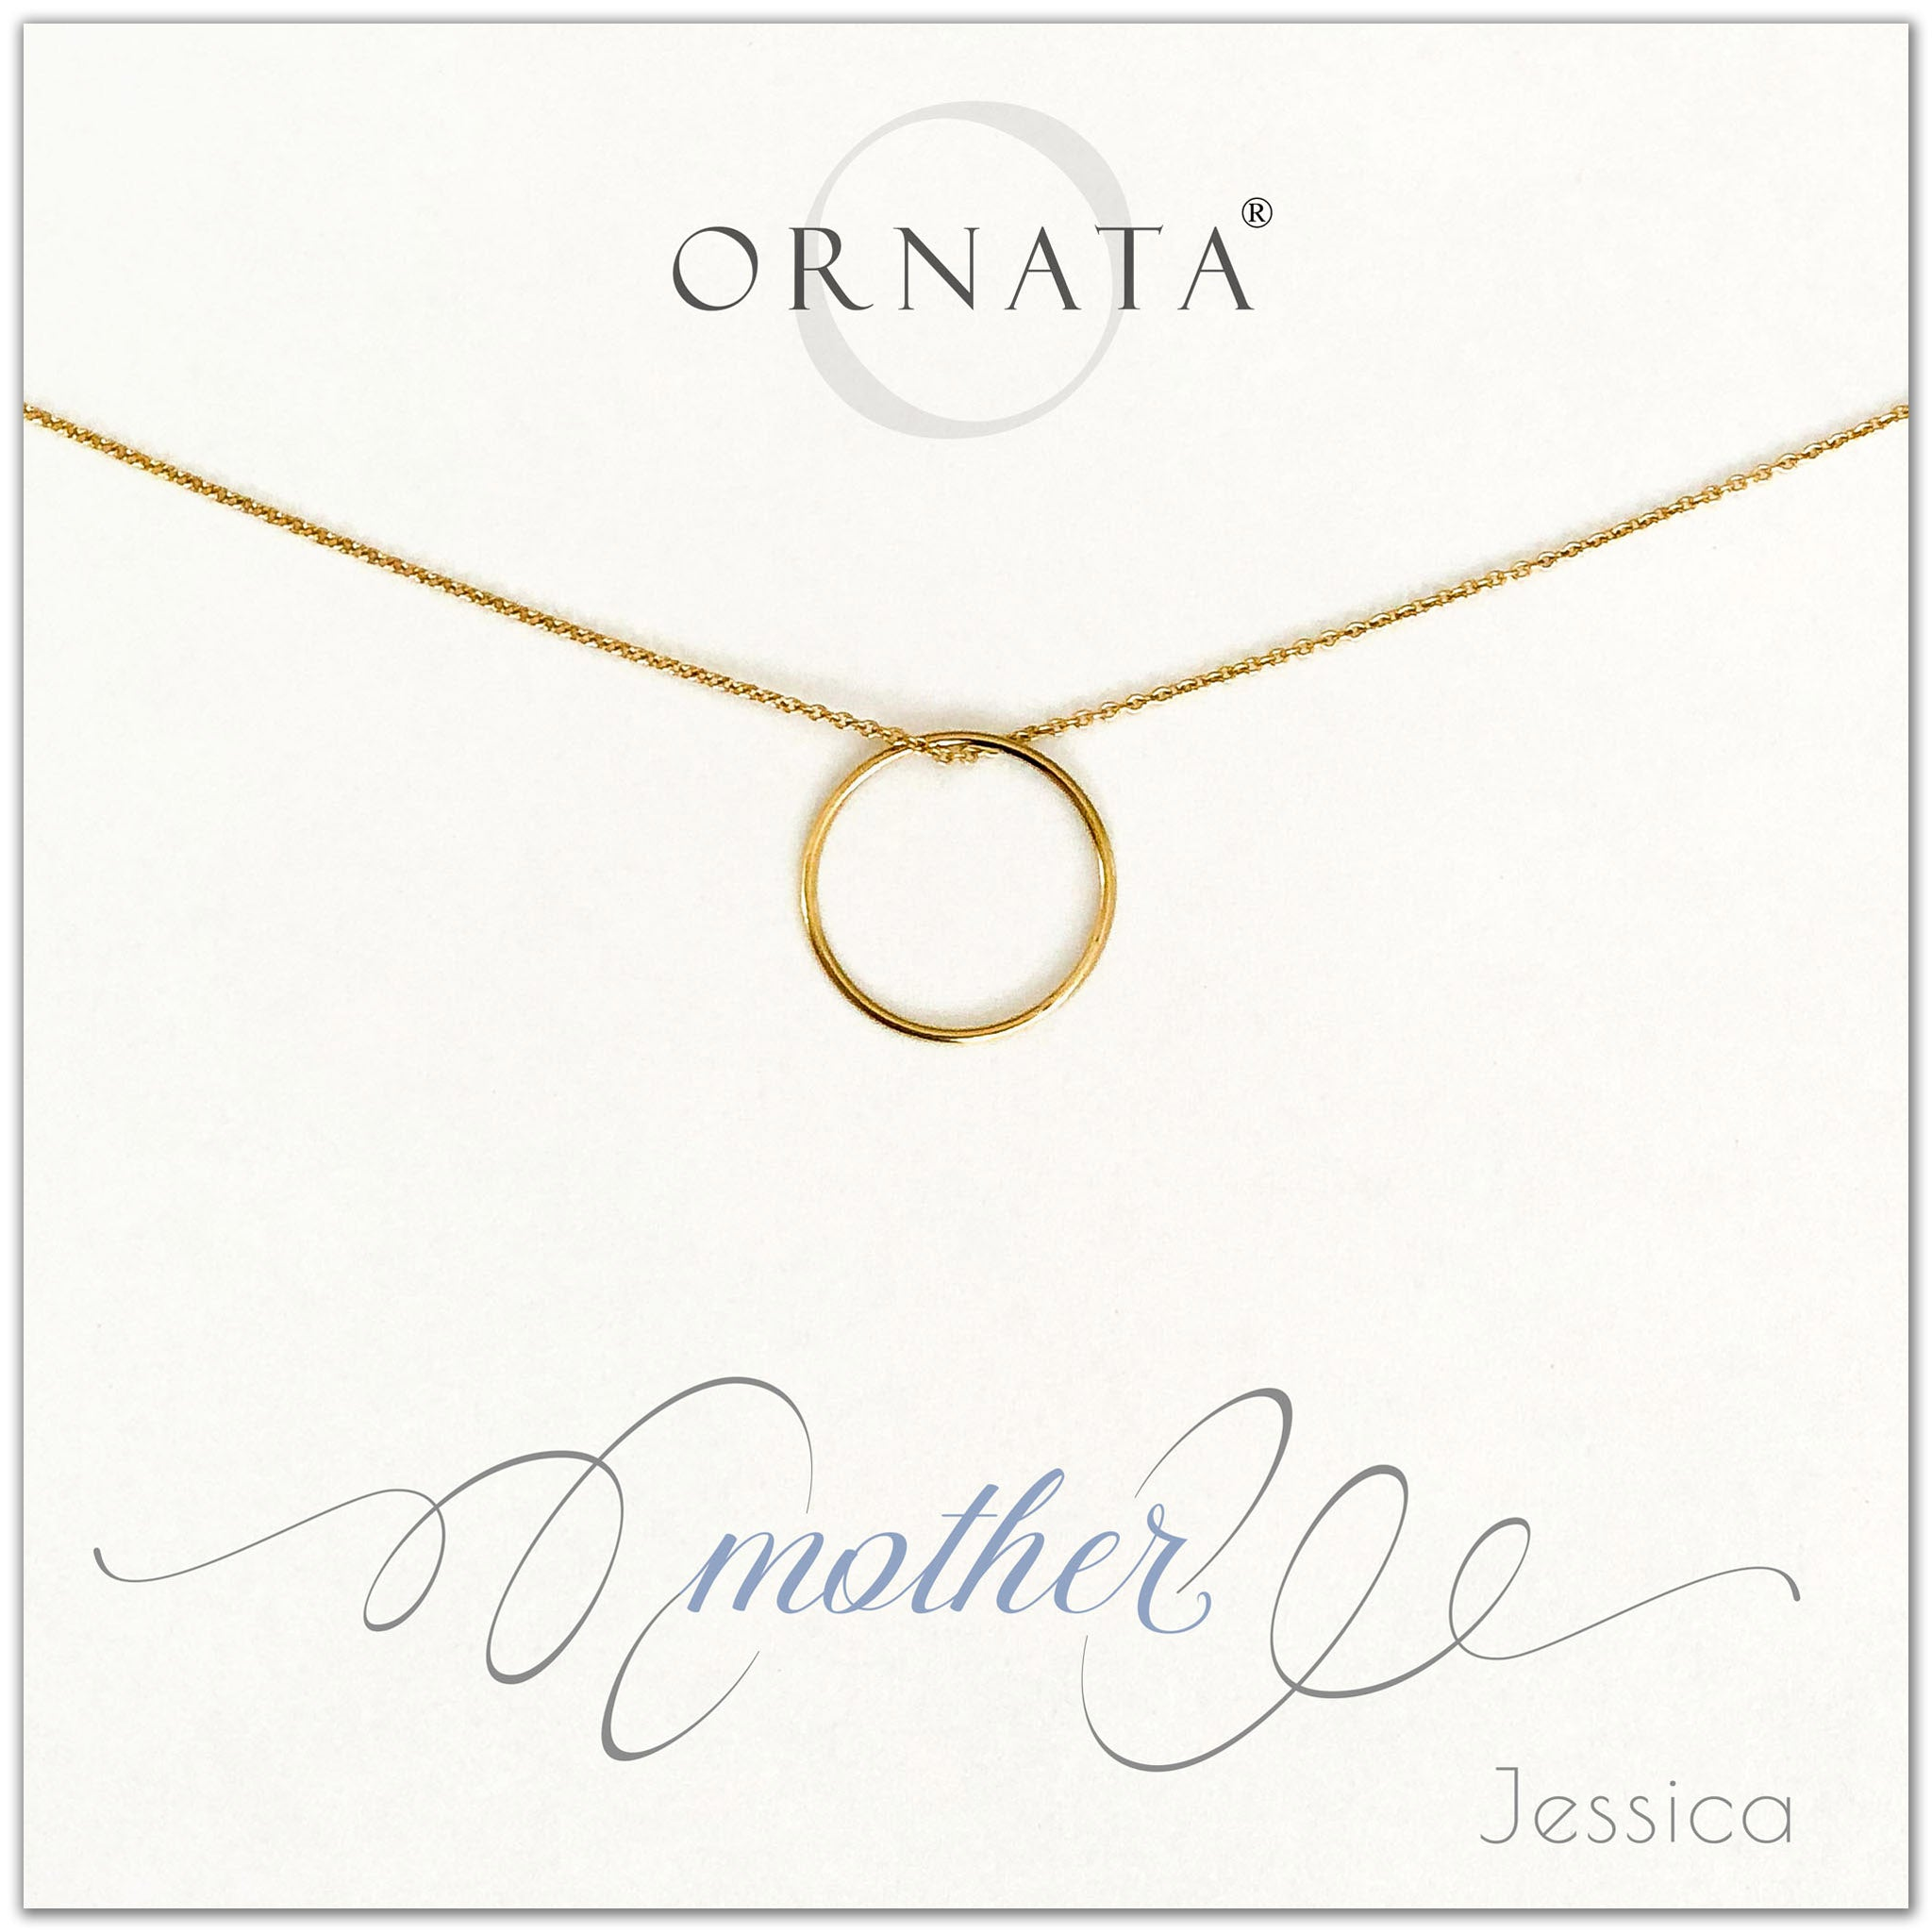 Mother or Mom - personalized gold necklaces. Our 14 karat gold filled custom jewelry is a perfect gift for mothers, daughters, granddaughters, grandmothers, sisters, best friends, wives, girlfriends, and family members. Also a good gift for Mother's Day.